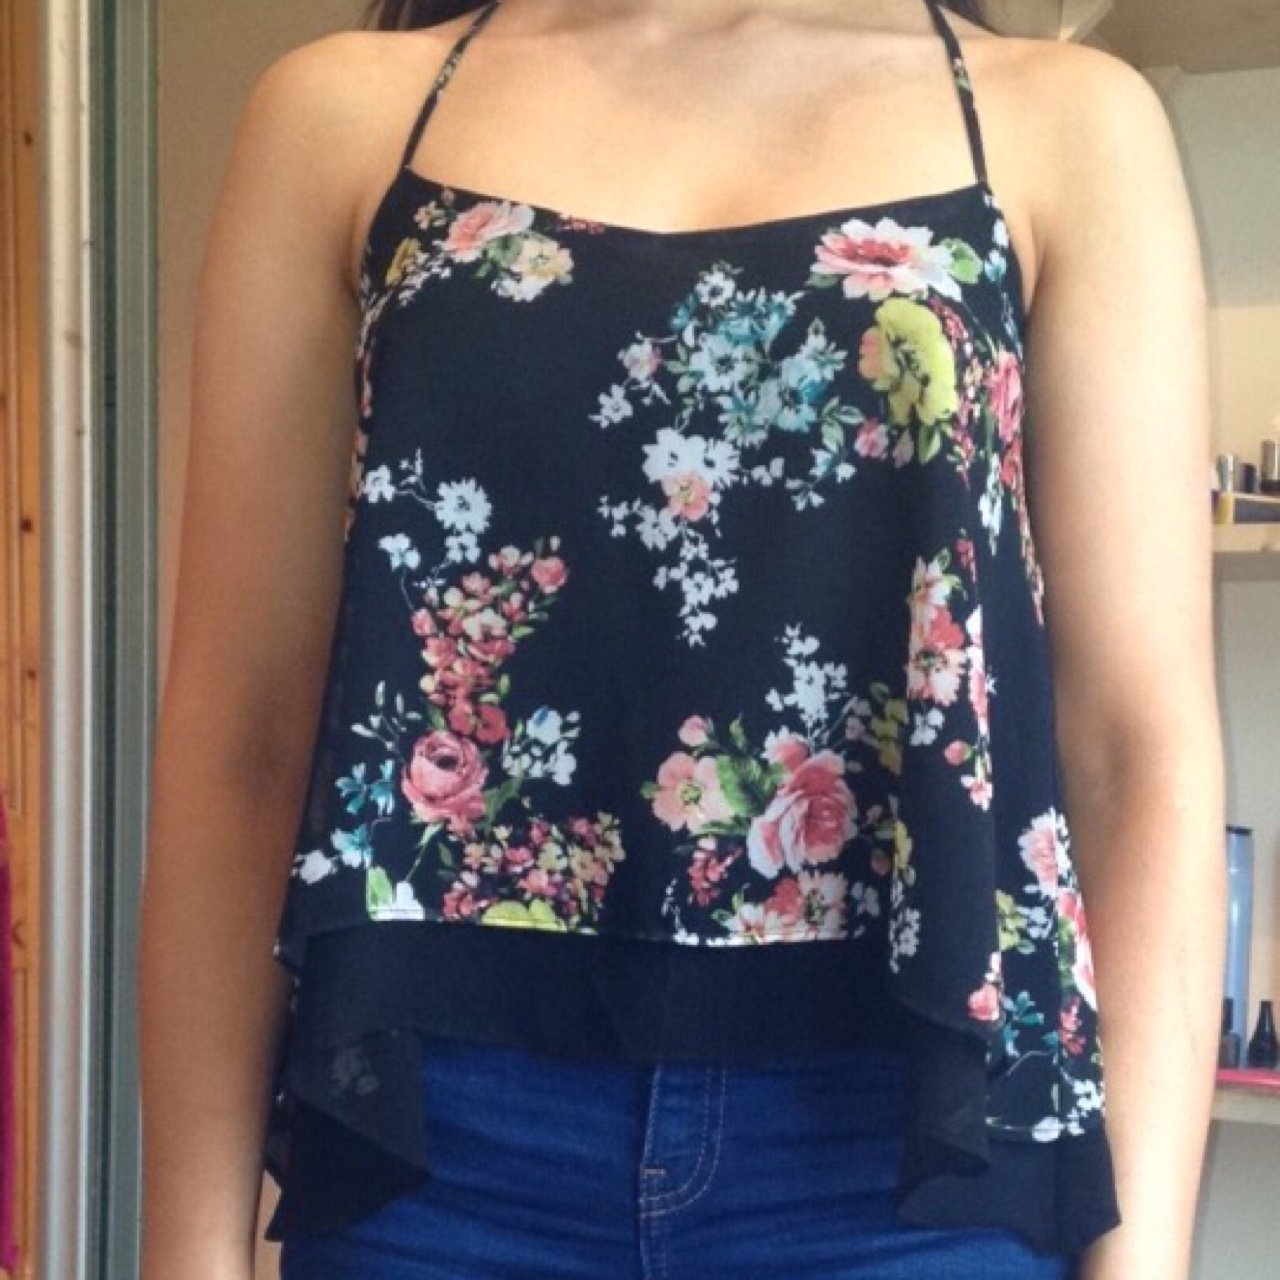 14be3da37e Selling this floral top from Bershka. Very good condition it - Depop